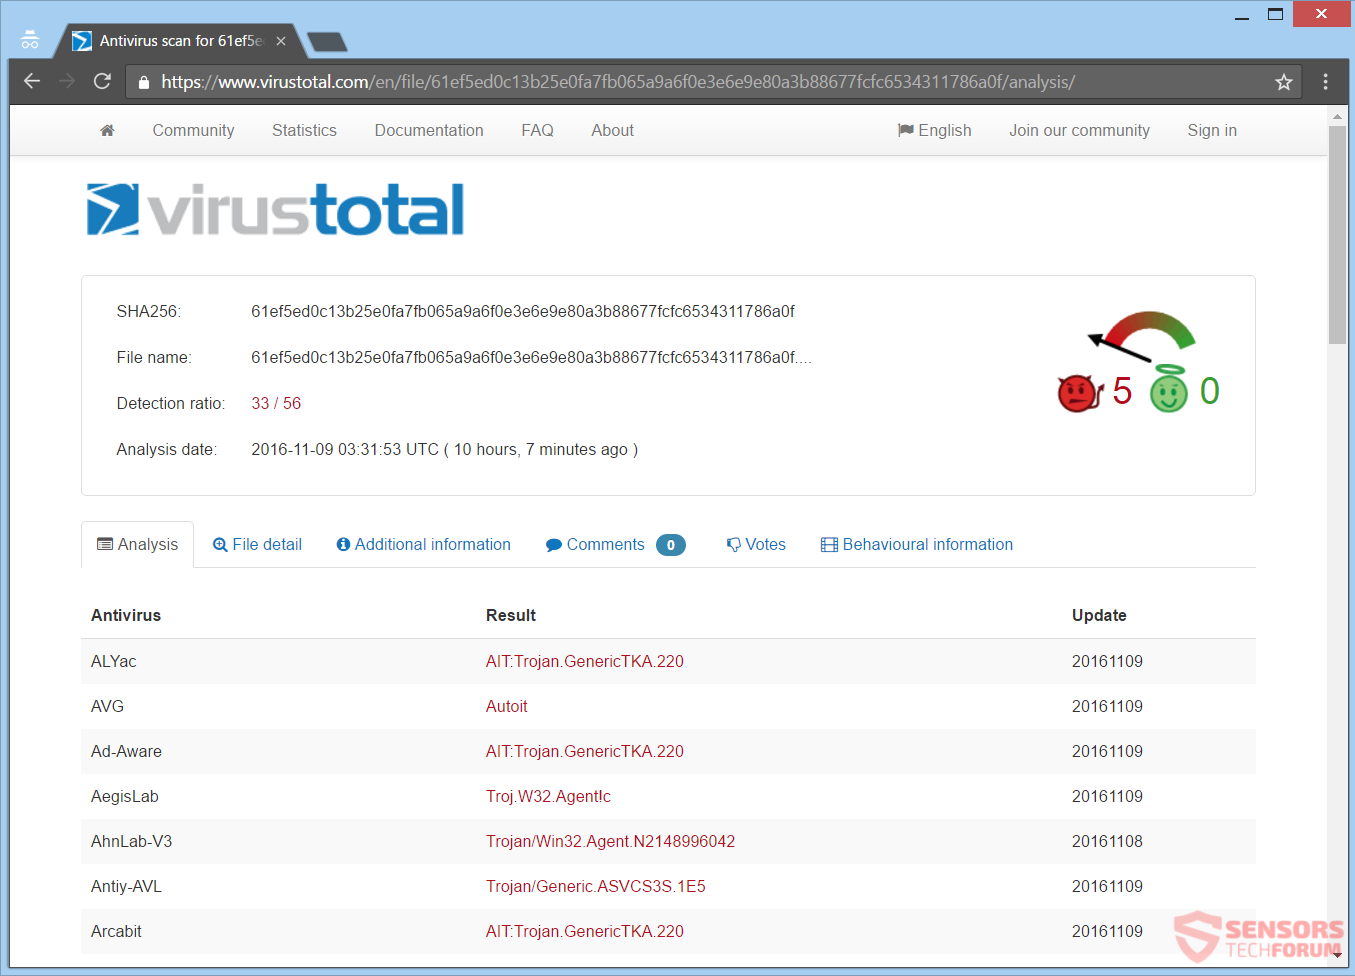 stf-paysafe-generator-ransomware-virus-total-detections